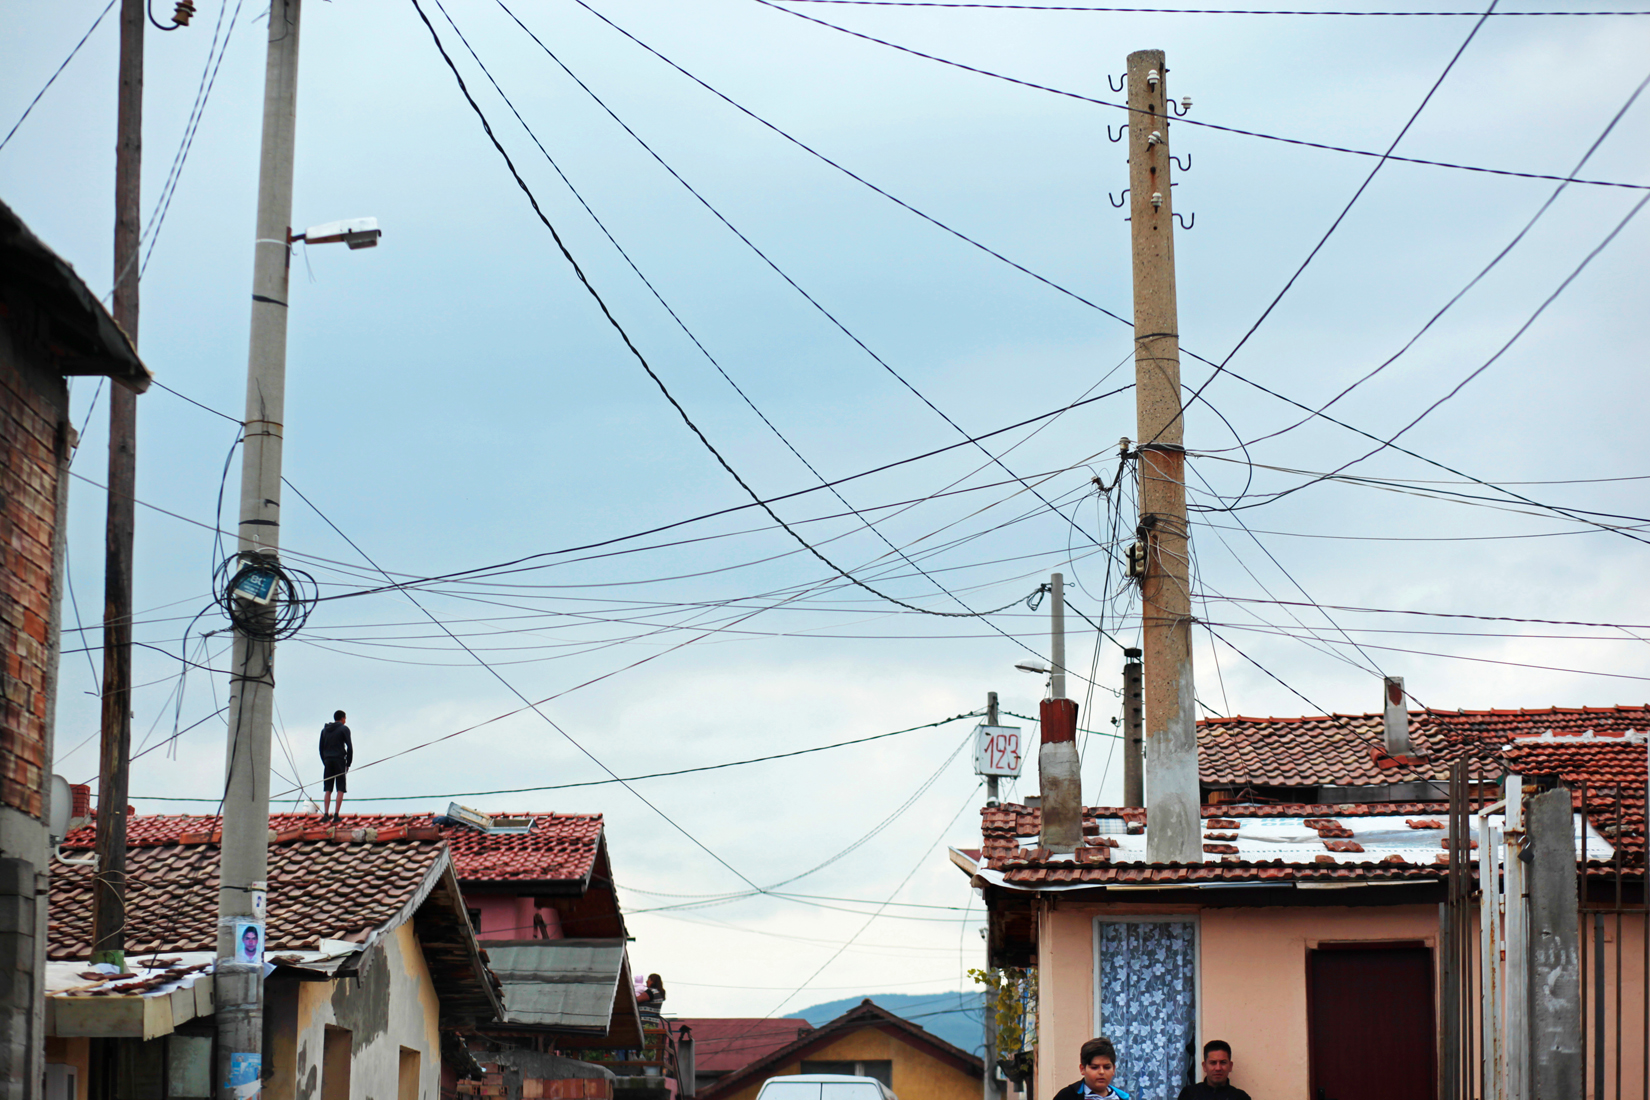 A man stands on a rooftop below a handmade electrical grid hanging over a Roma village, as people turn up to vote in October's Parliamentary elections in the nation's capital, Sofia. Today, October 5th, 2014, is also Midterm Elections day in the States - its multi-party ticket an unimaginable reality in autocratic Bulgaria pre-1989. Despite a month-long vacillation on the make-up of their political coalitions and their new prime minister - and that only 49% of the population turned up to vote today - party leaders narrowly avoided reelections, with former prime minister and leader of center-right party GERB Boyko Borisov reinstated at the post.